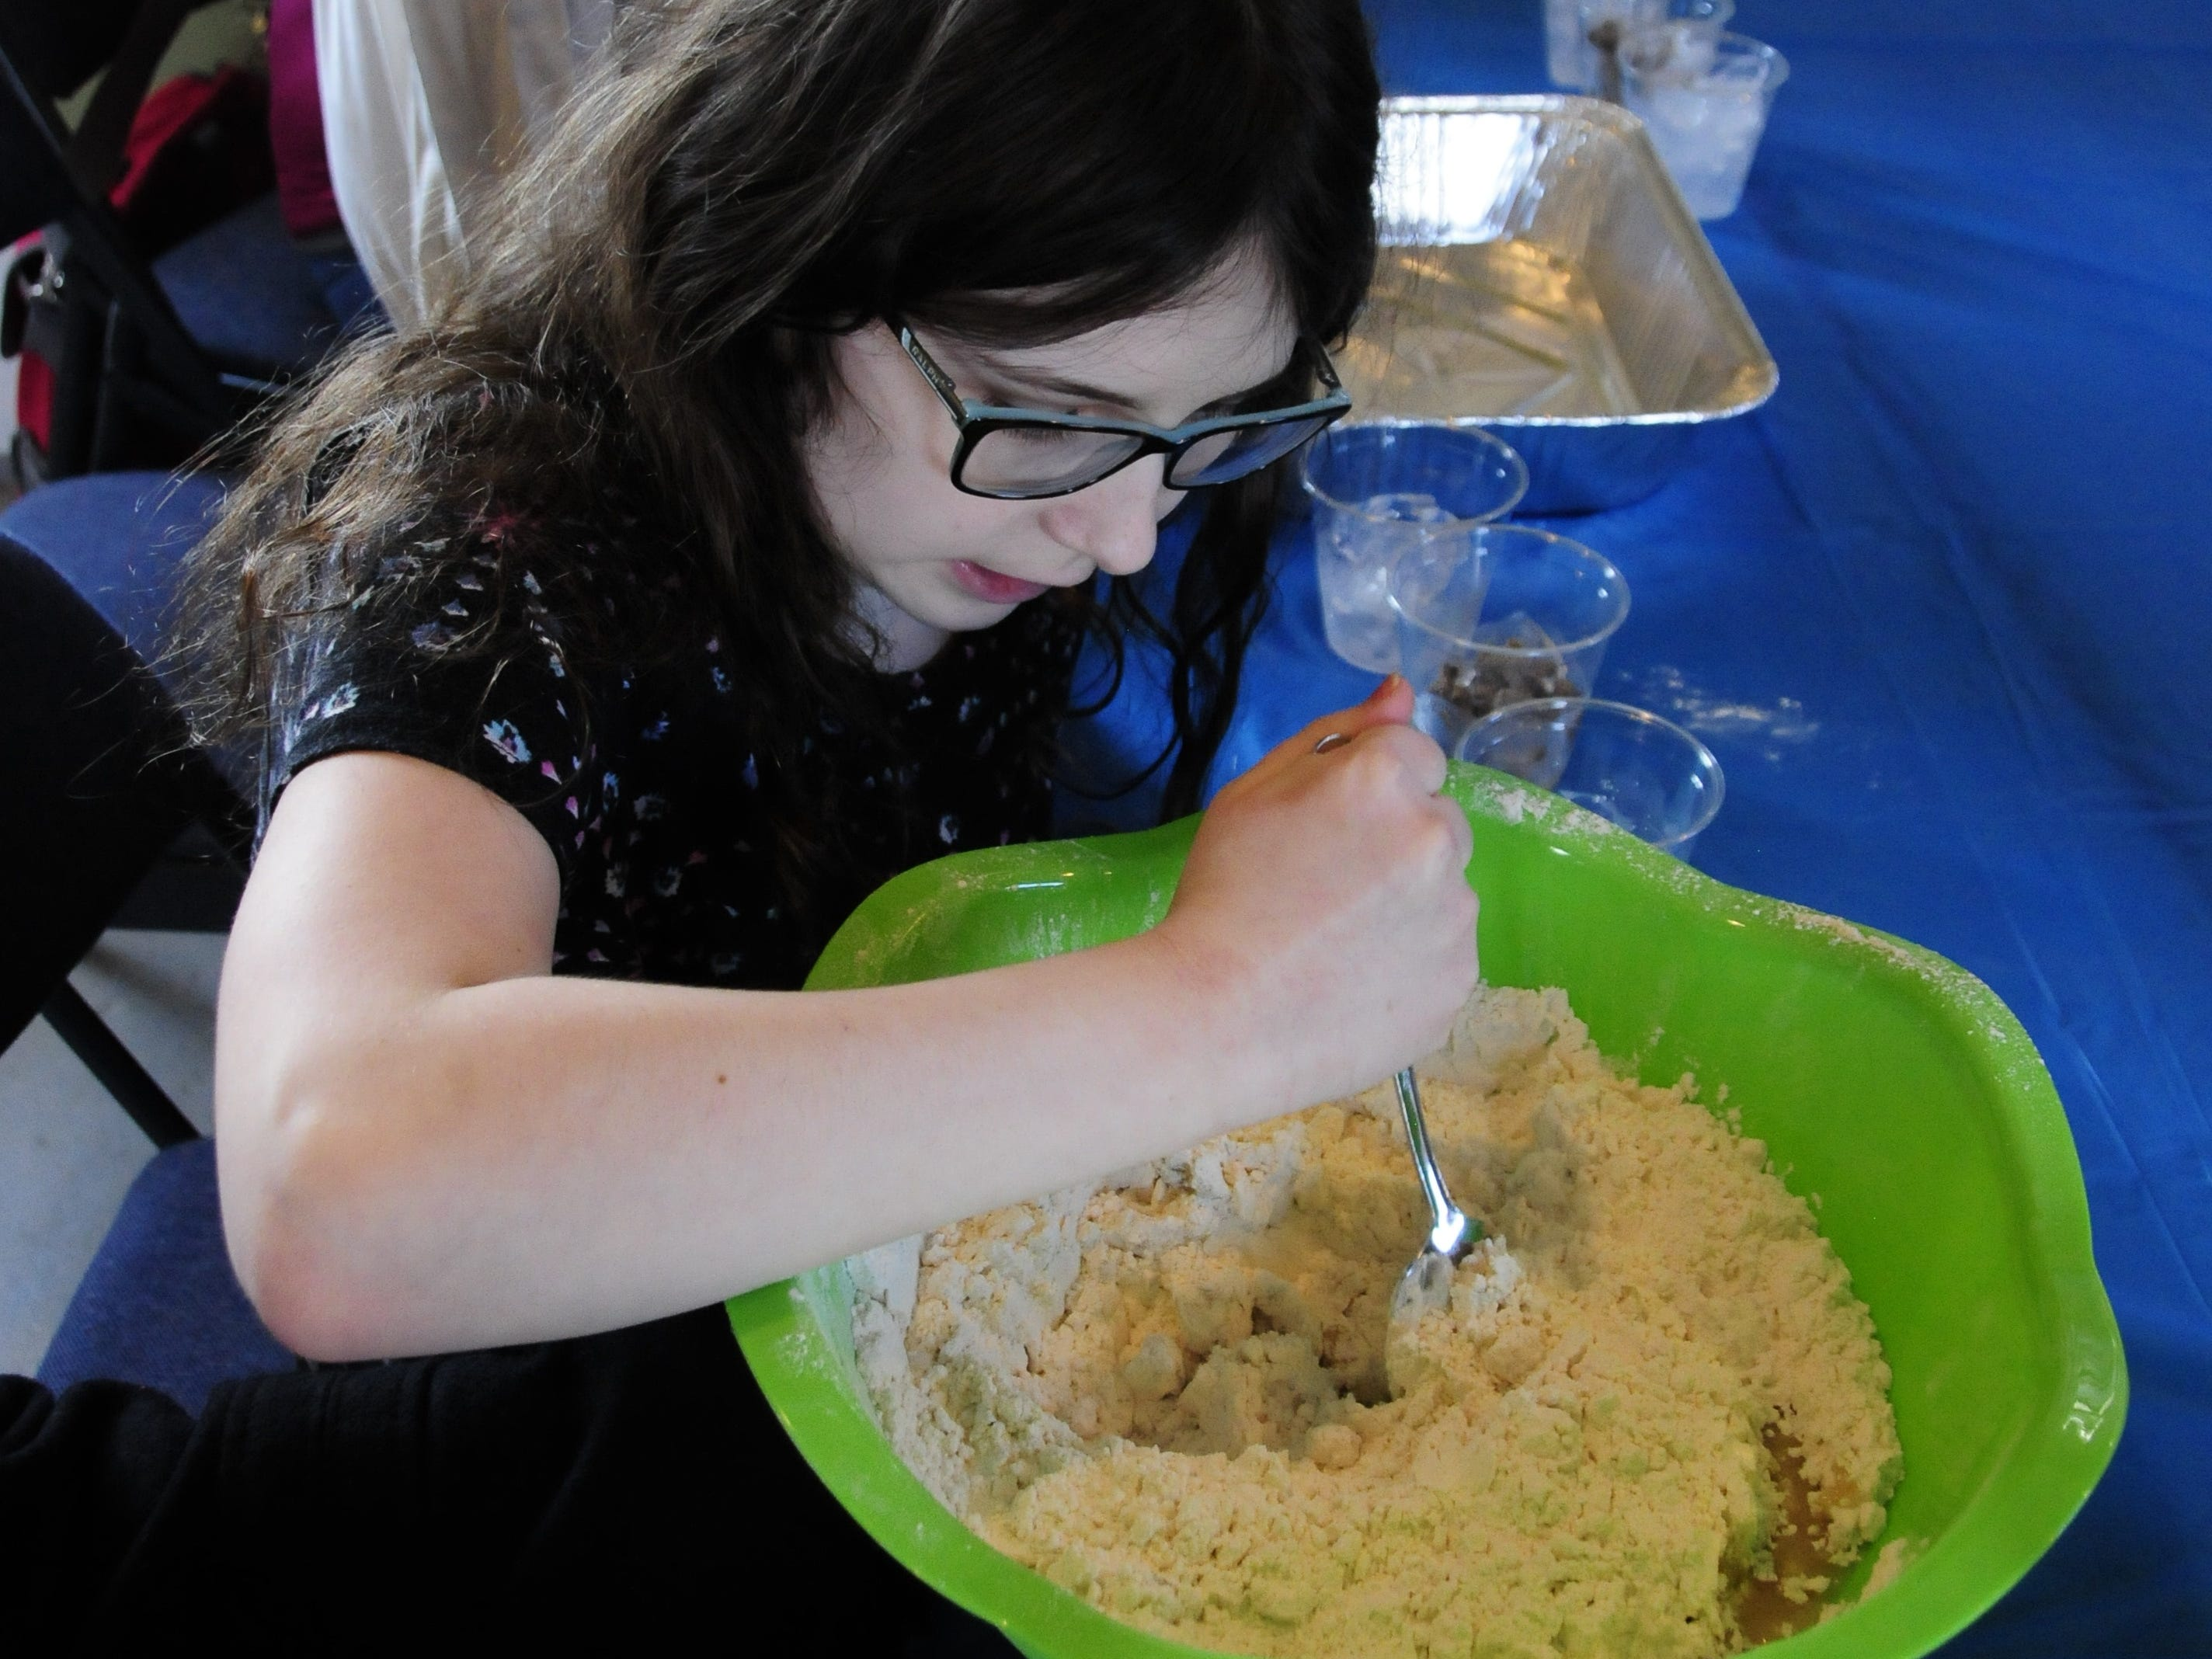 Ella Kraus mixes a batch of snow sand at the Wacky Winter Science event at Fort Gratiot Light Station County Park.